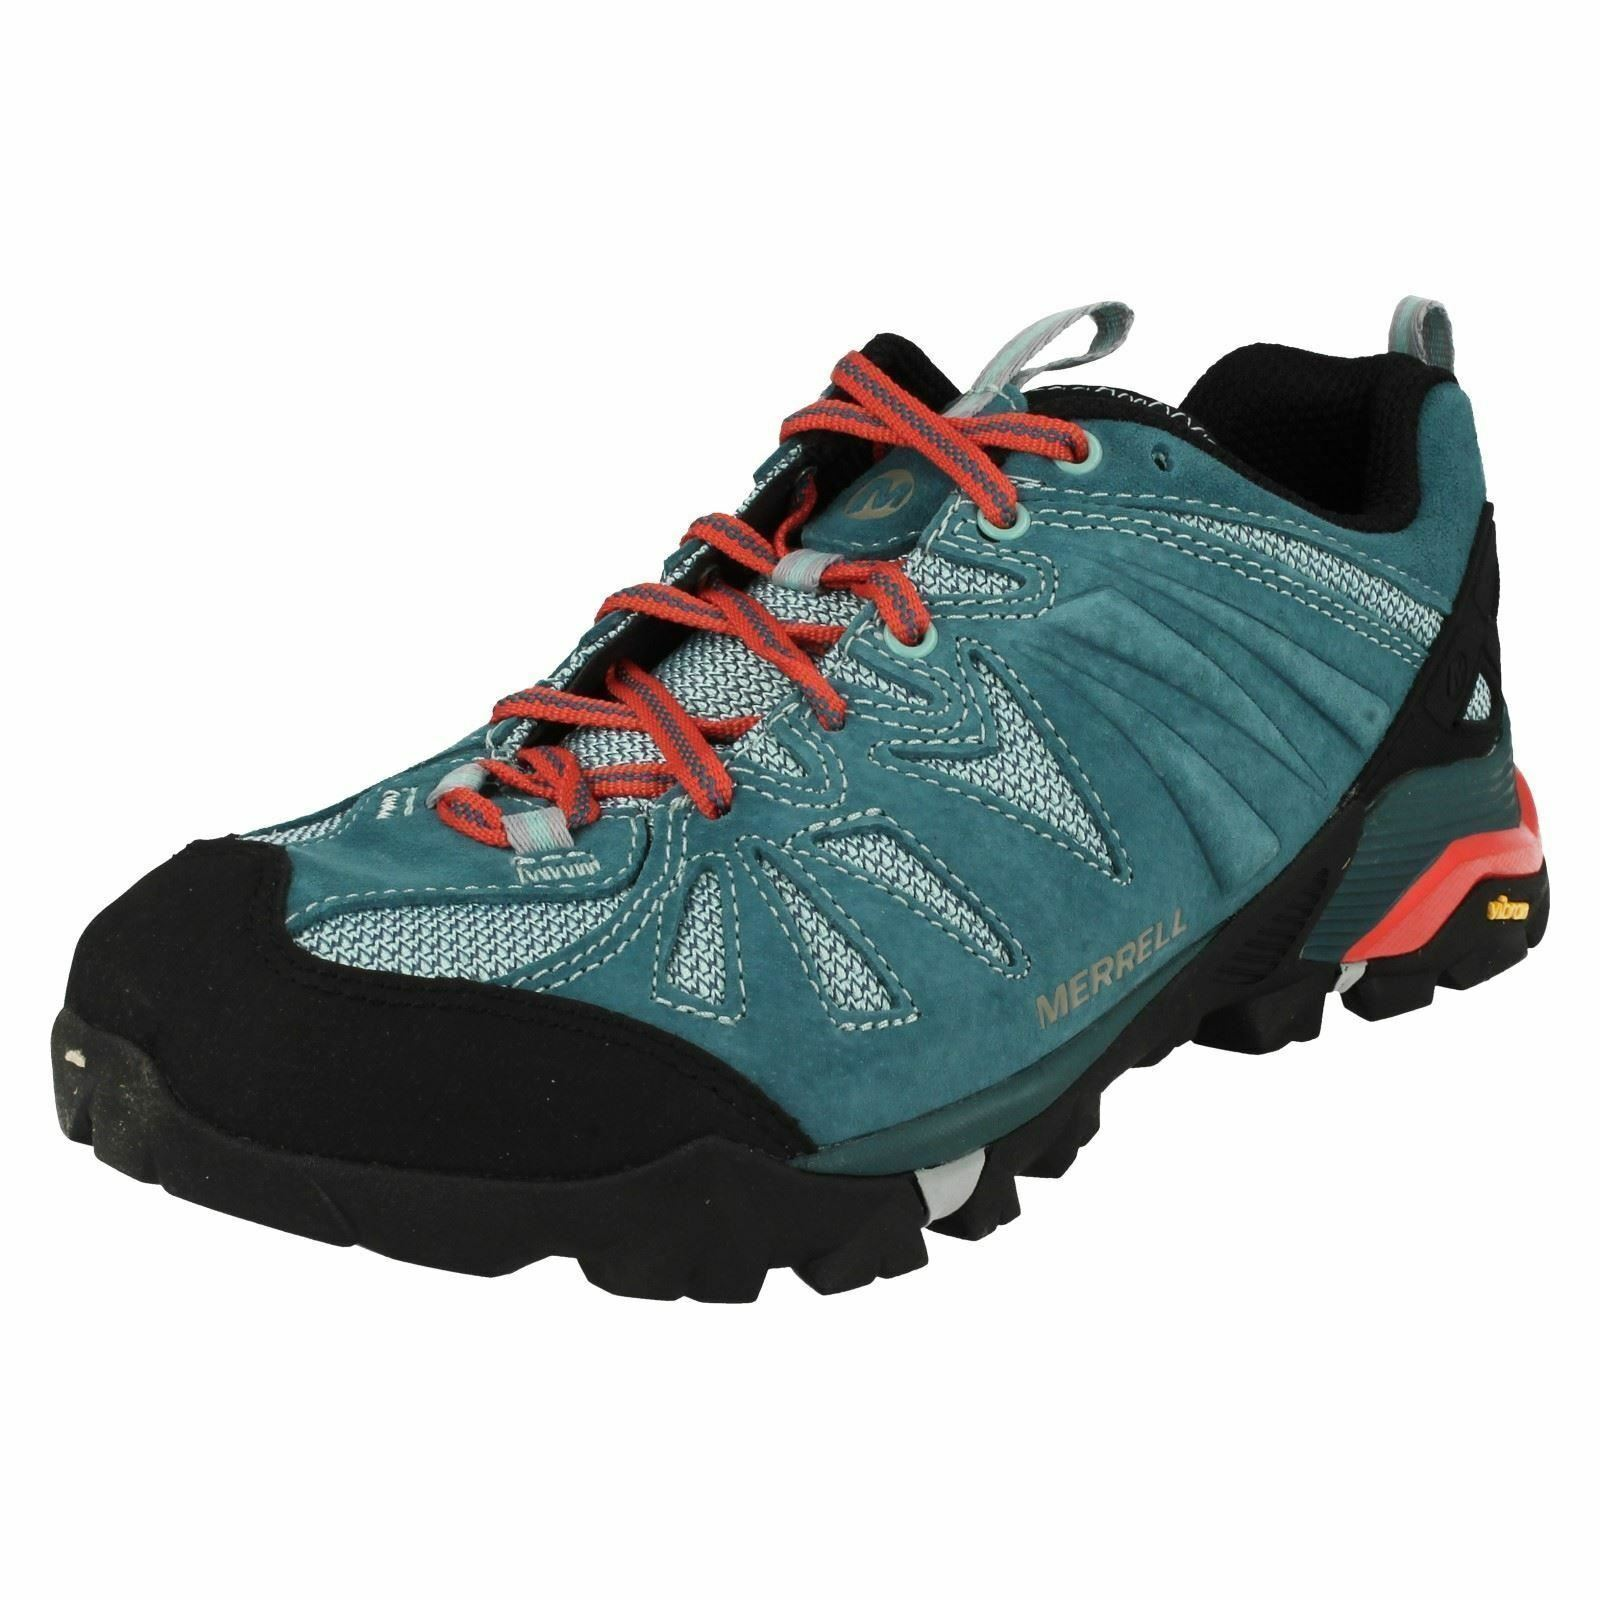 Ladies Merrell Lace Up Trainers- Capro Dragonfly - Great Price!